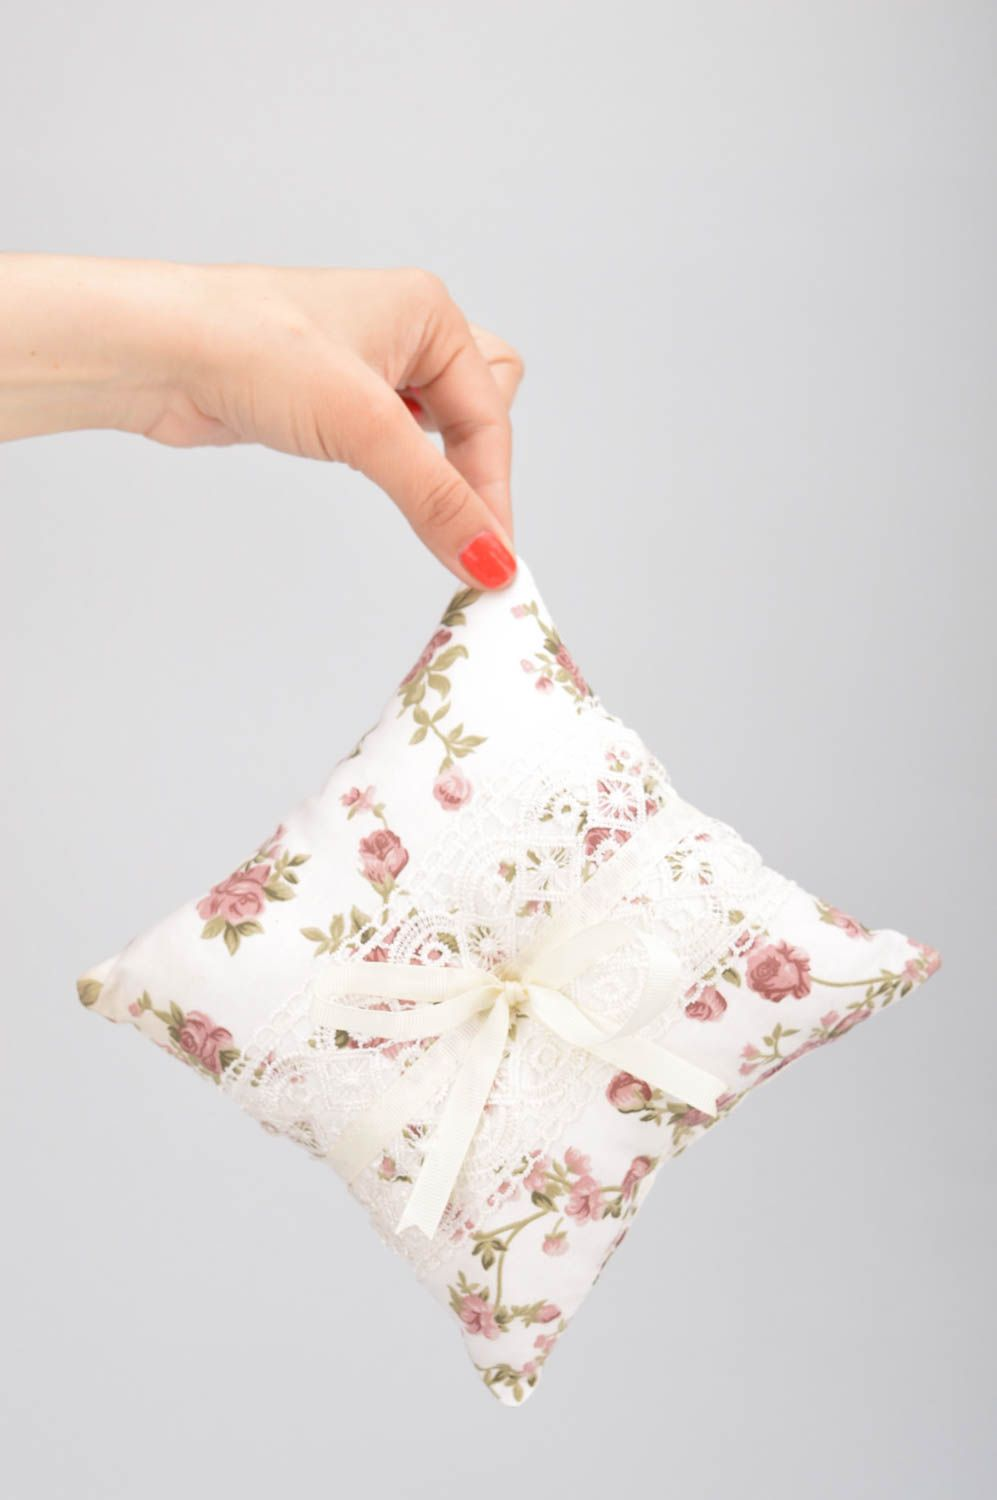 wedding accessories Homemade designer cotton fabric white ring pillow with flower pattern and lace - MADEheart.com